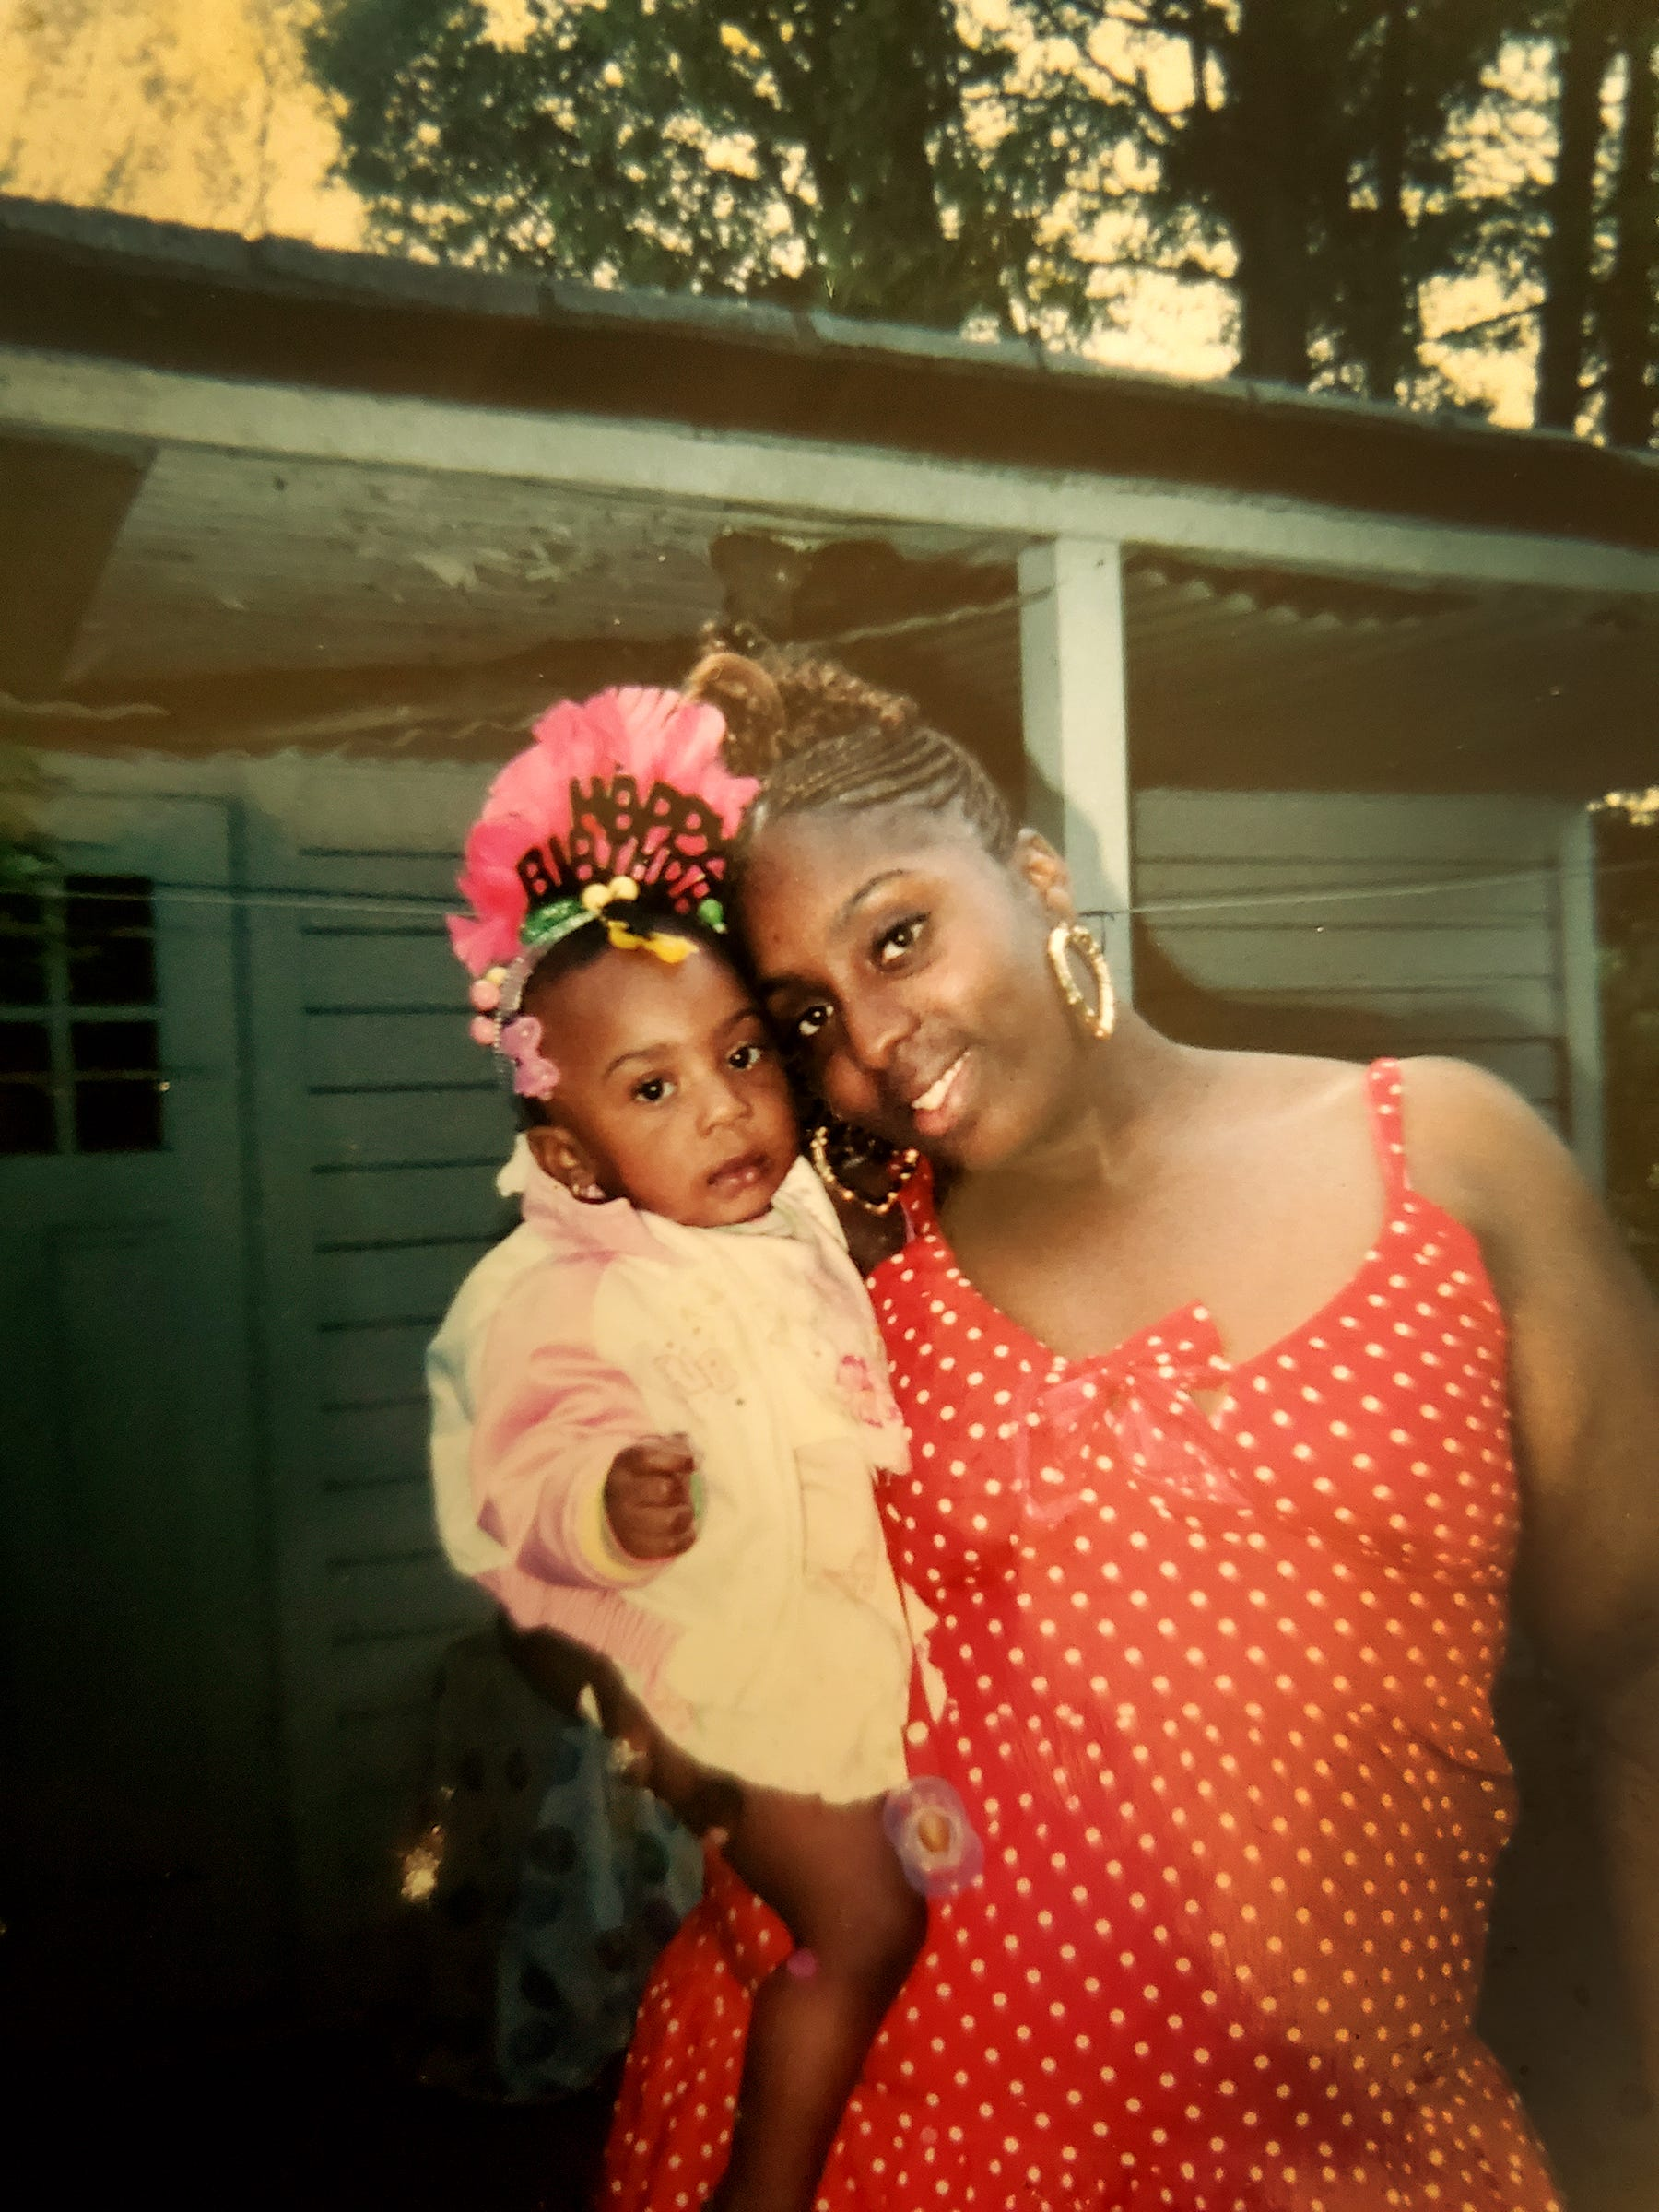 Tyra Moore, pictured with her daughter Samari Malone at her first birthday party in 2008.